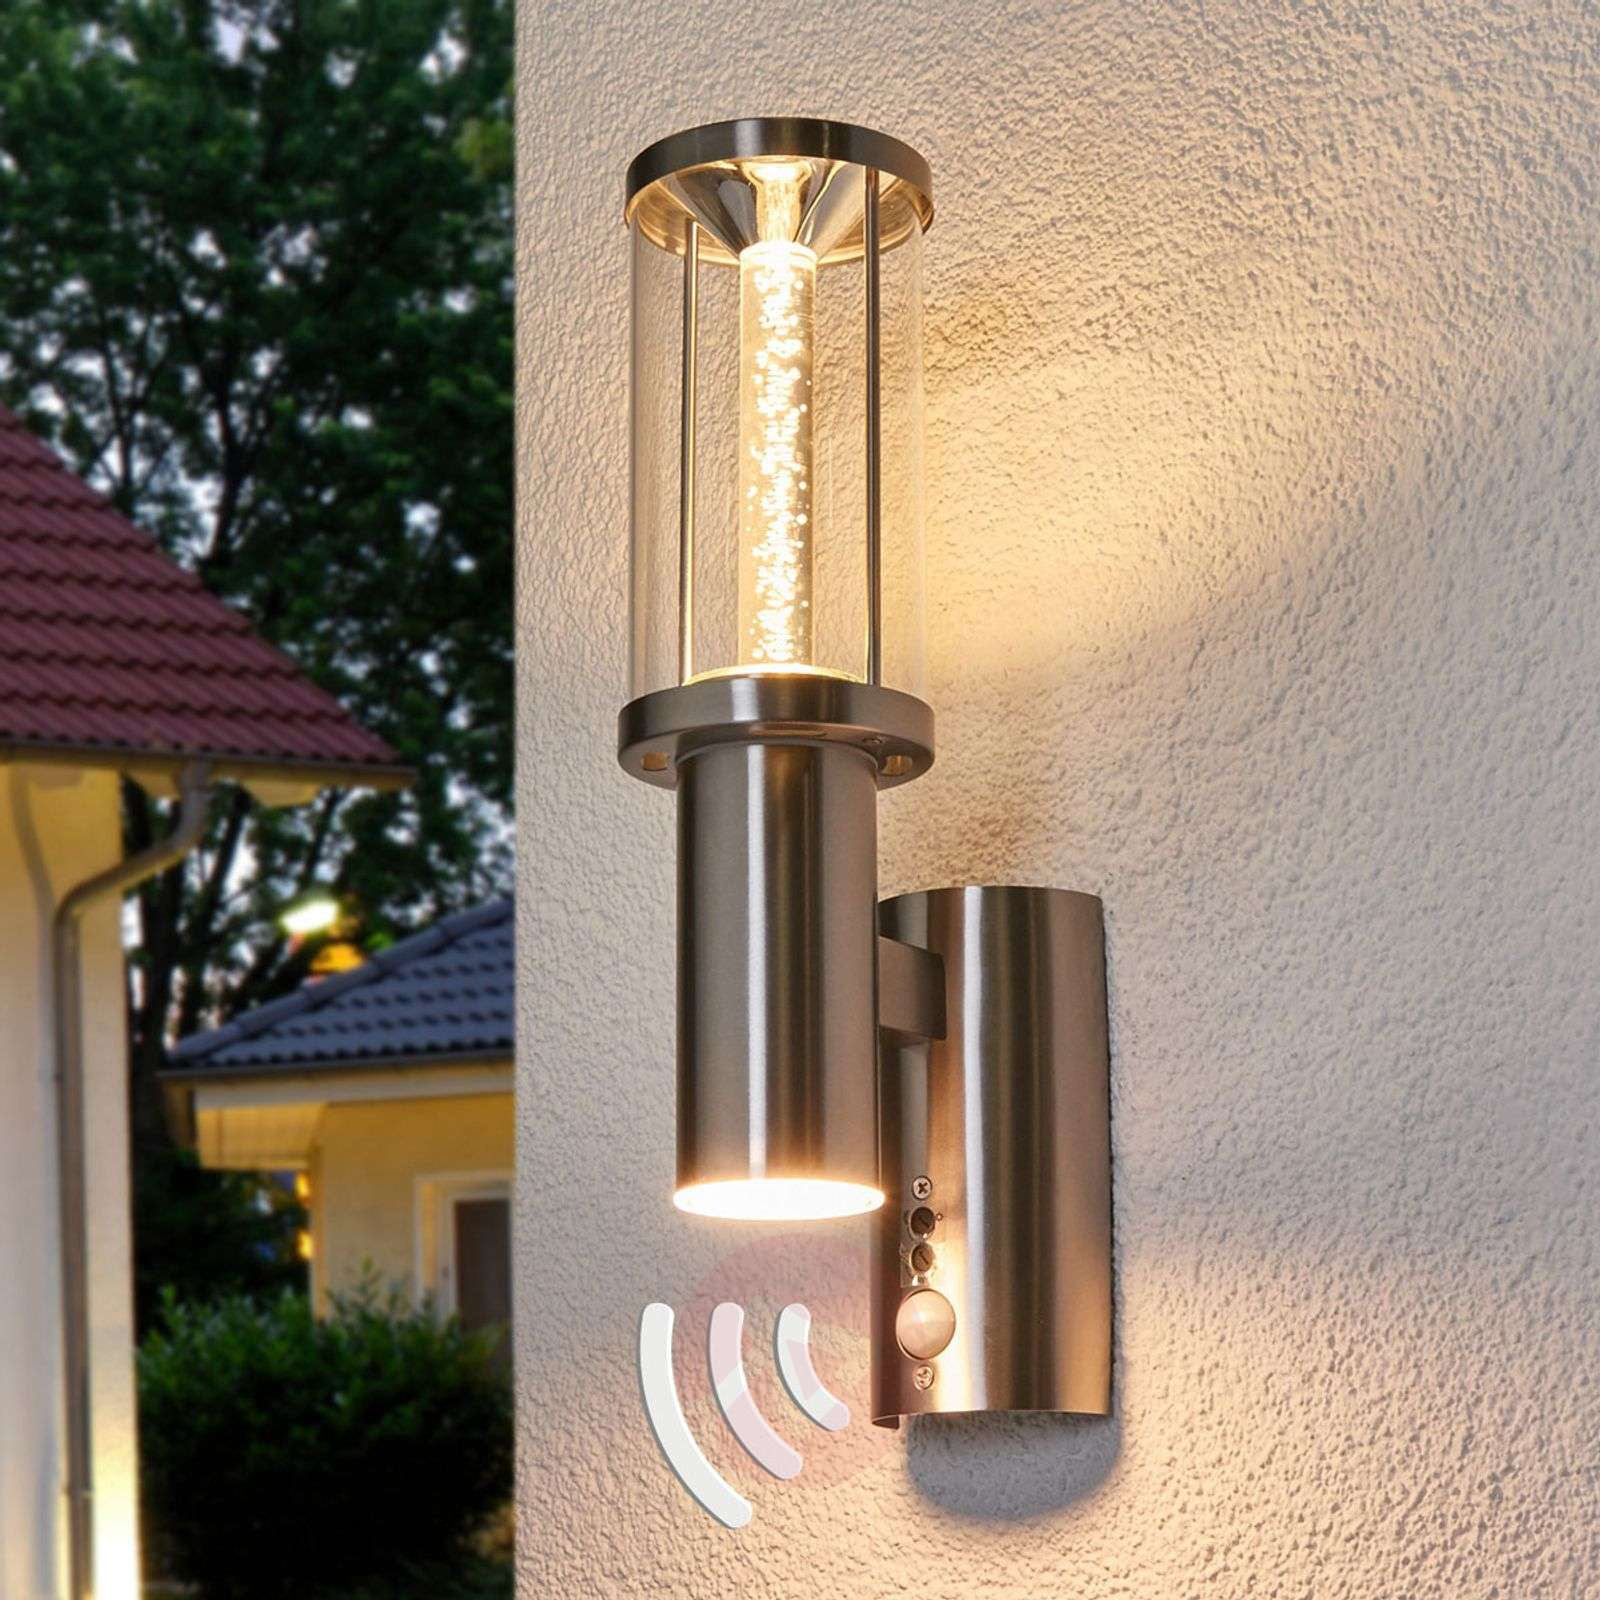 Backyard Patio Privacy White Accent Wall Lighting: Decorative LED Outdoor Light Trono Stick With PIR